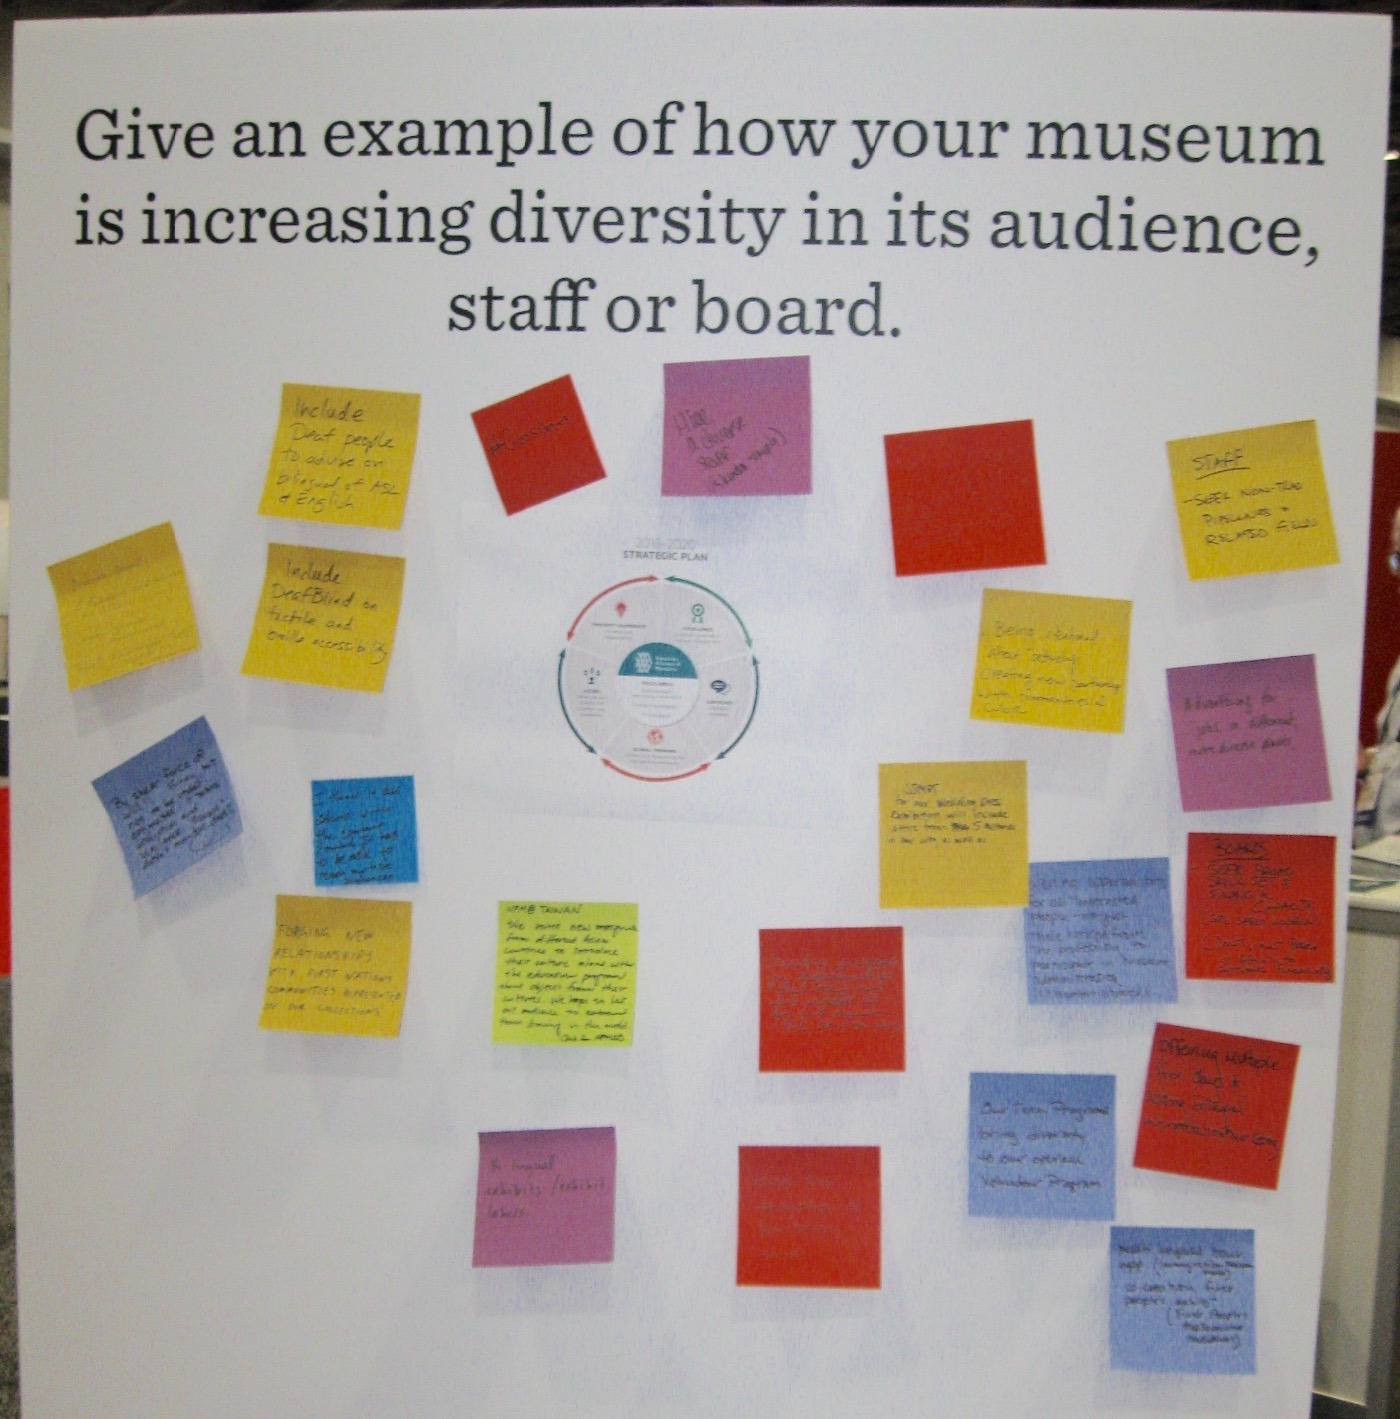 An question board located at the CFM during the conference. All photos by the author for Hyperallergic